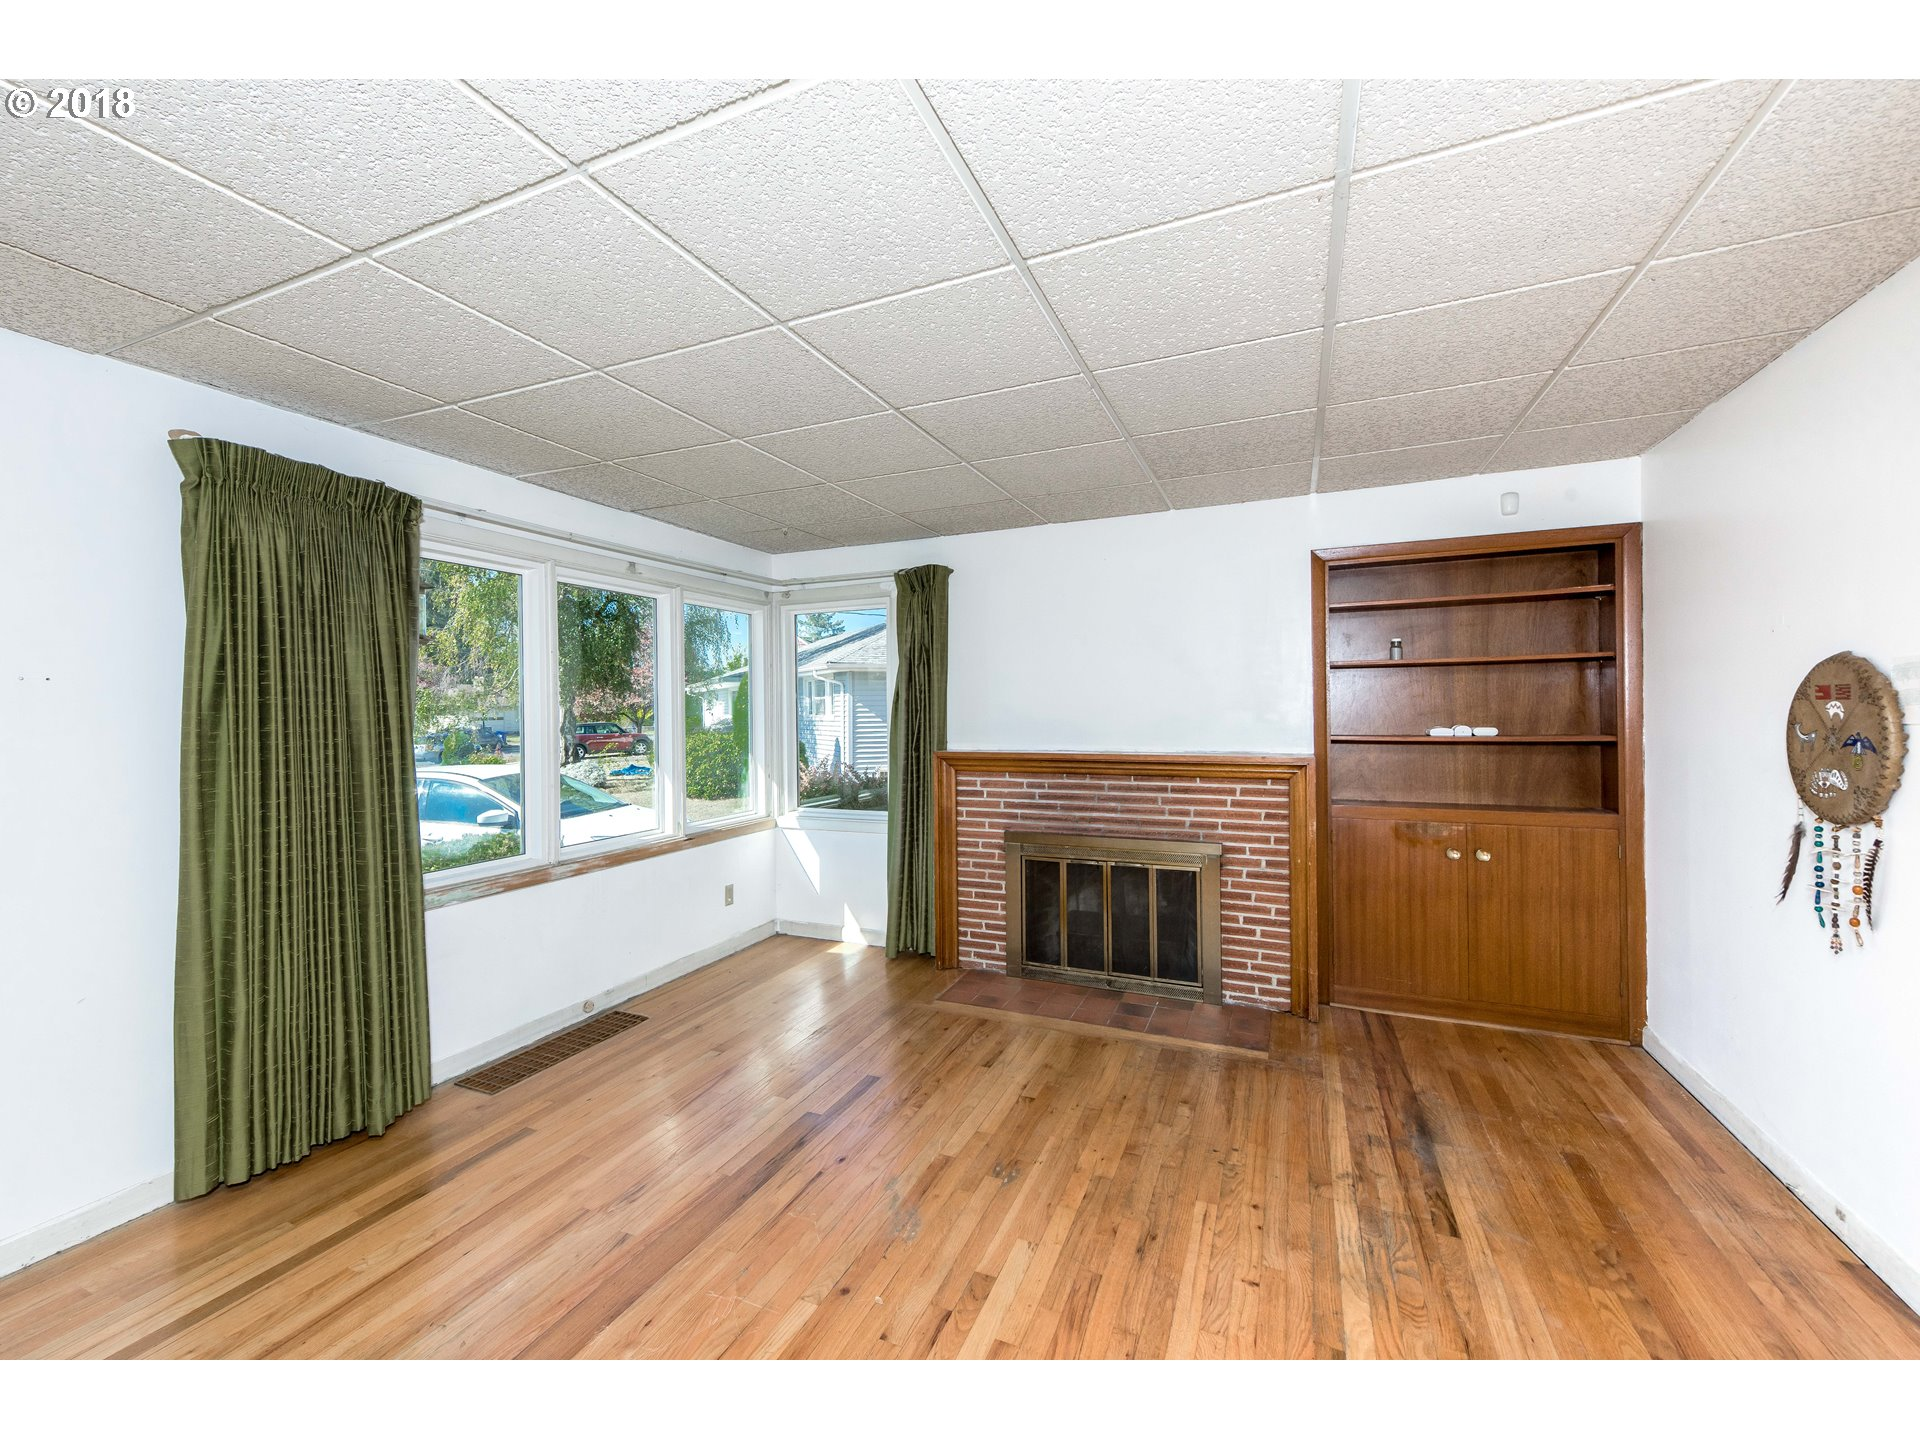 2152 sq. ft 3 bedrooms 1 bathrooms  House For Sale,Portland, OR